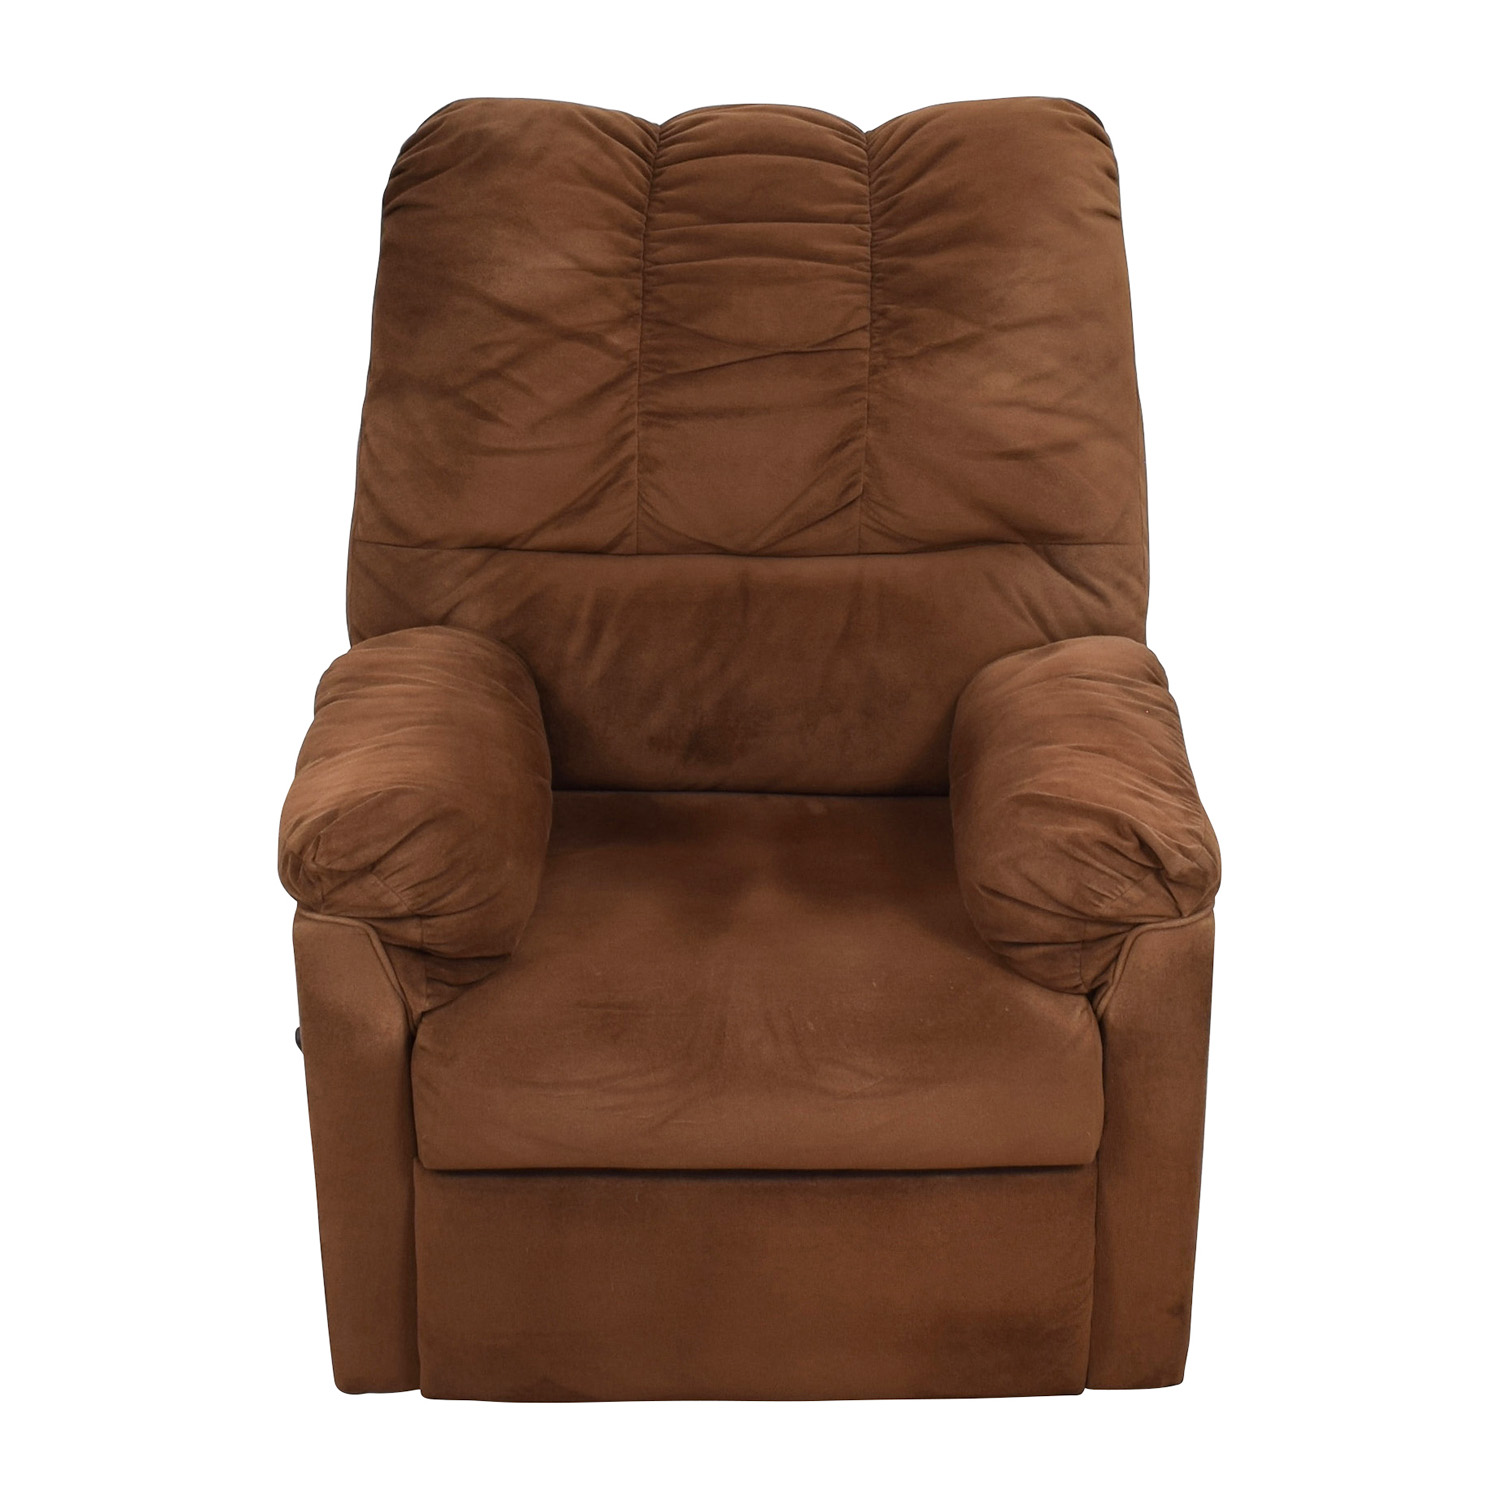 Brown Plush Recliner / Chairs